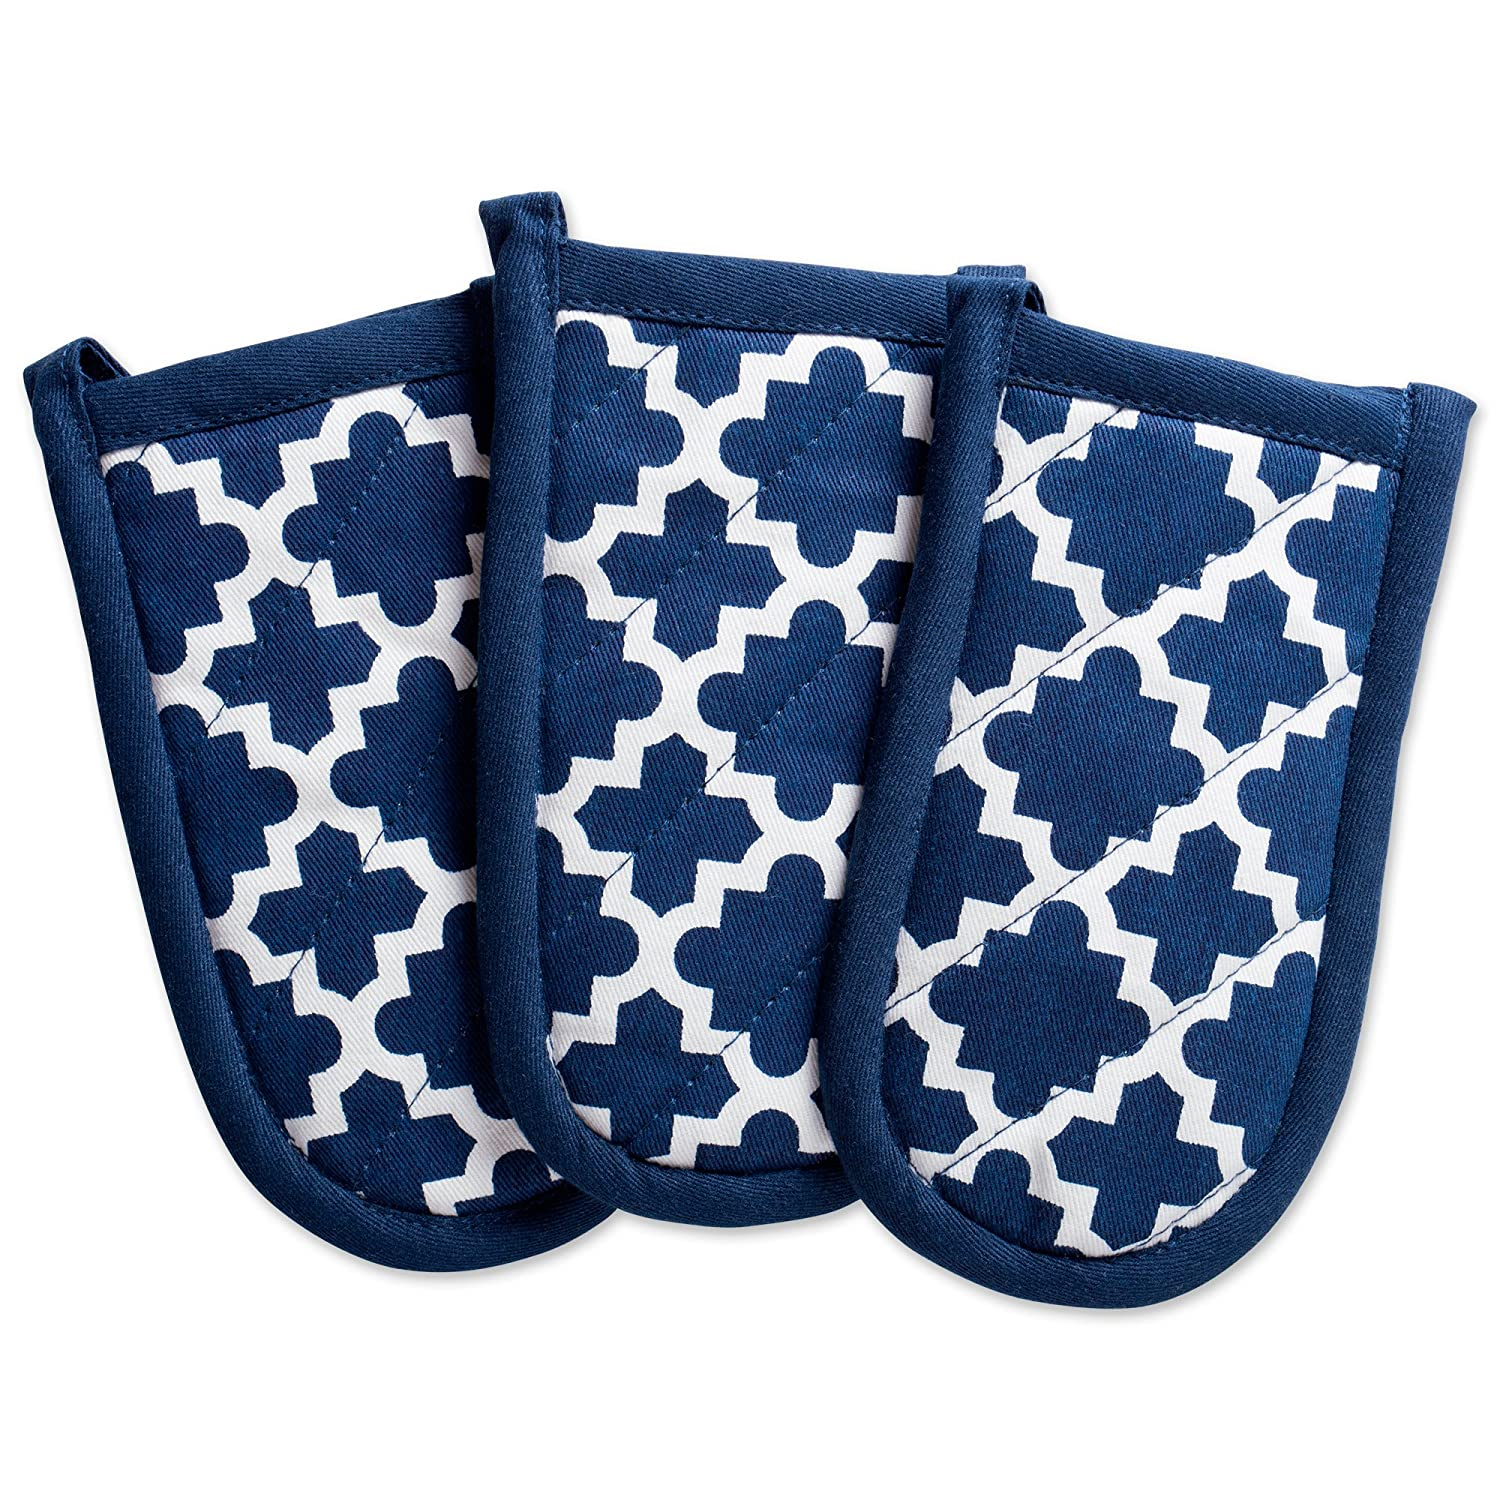 """DII Cotton Lattice Pan Handle Holders, 6 x 3"""" Set of 3, Machine Washable and Heat Resistant Pan Handle Sleeve for Kitchen Cooking & Baking-Nautical Blue"""